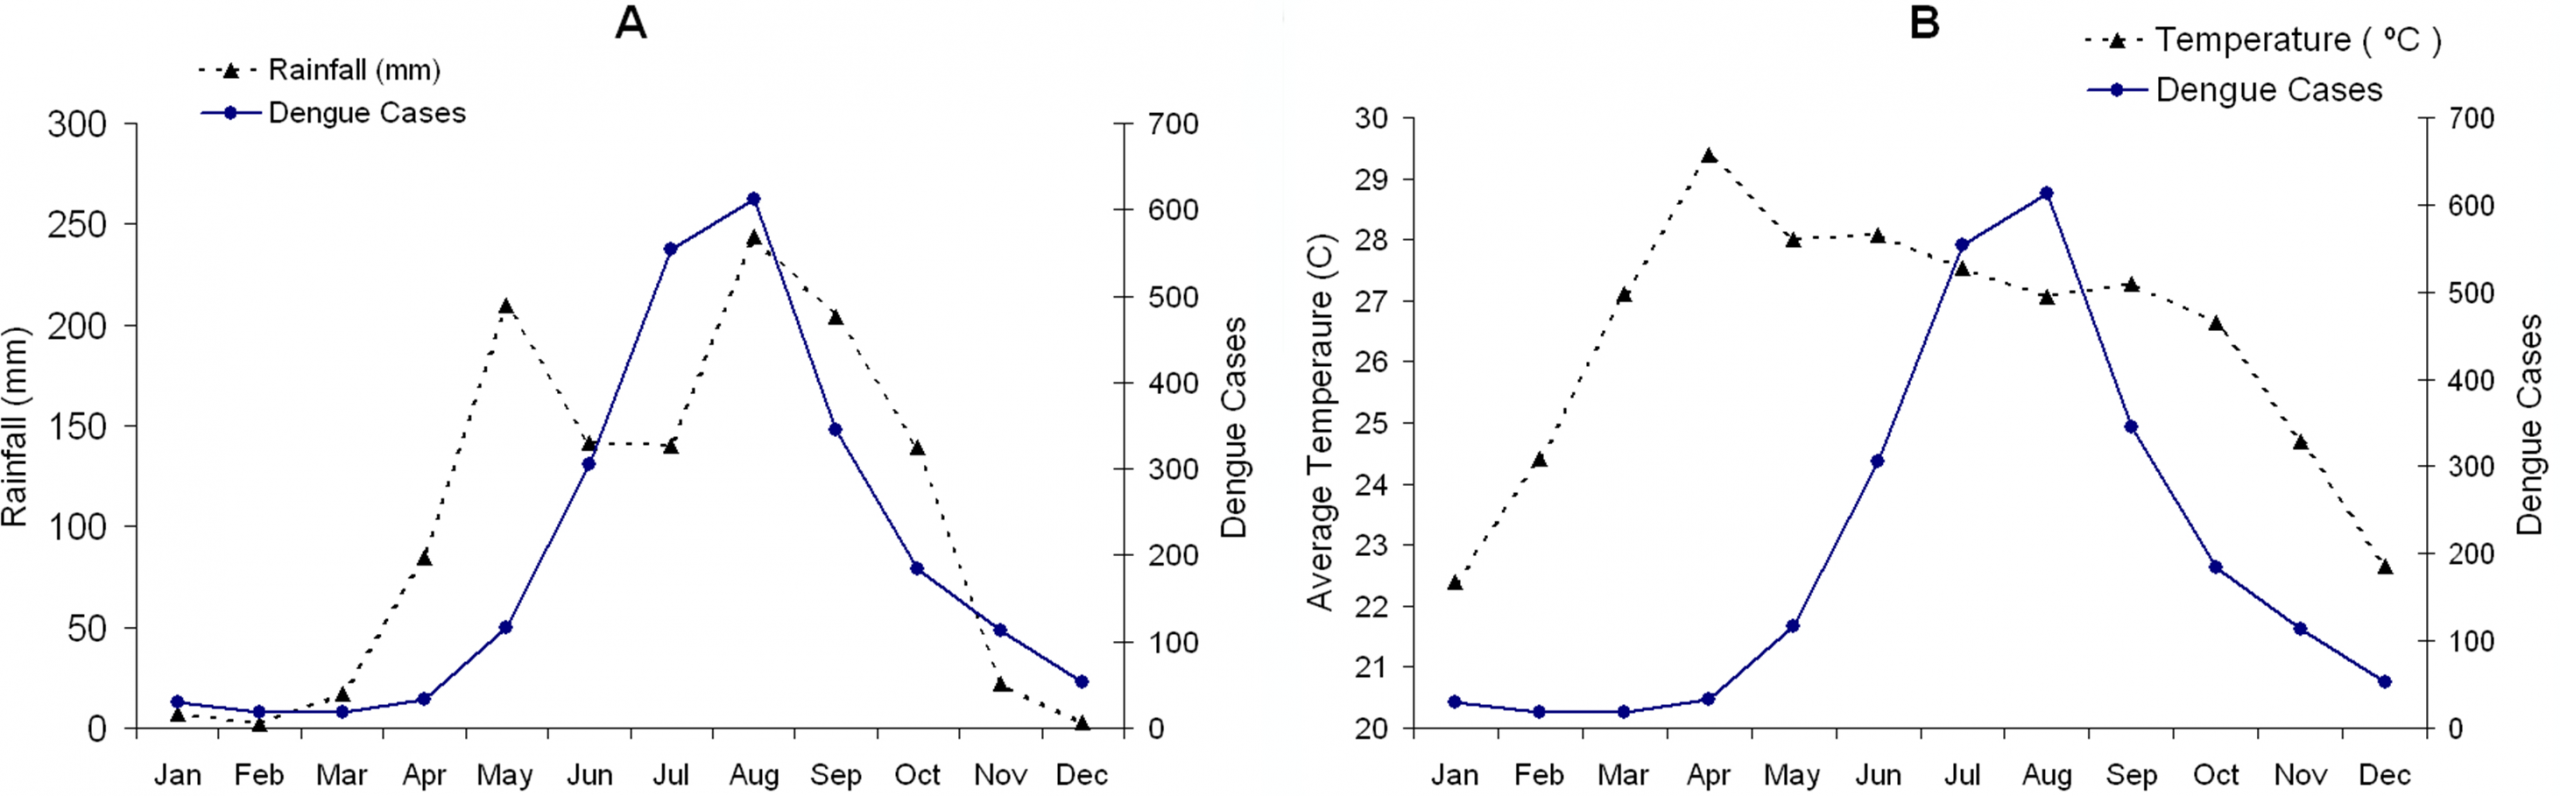 The Seasonal Reproduction Number Of Dengue Fever: Impacts Of dedans Reproduire Une Figure